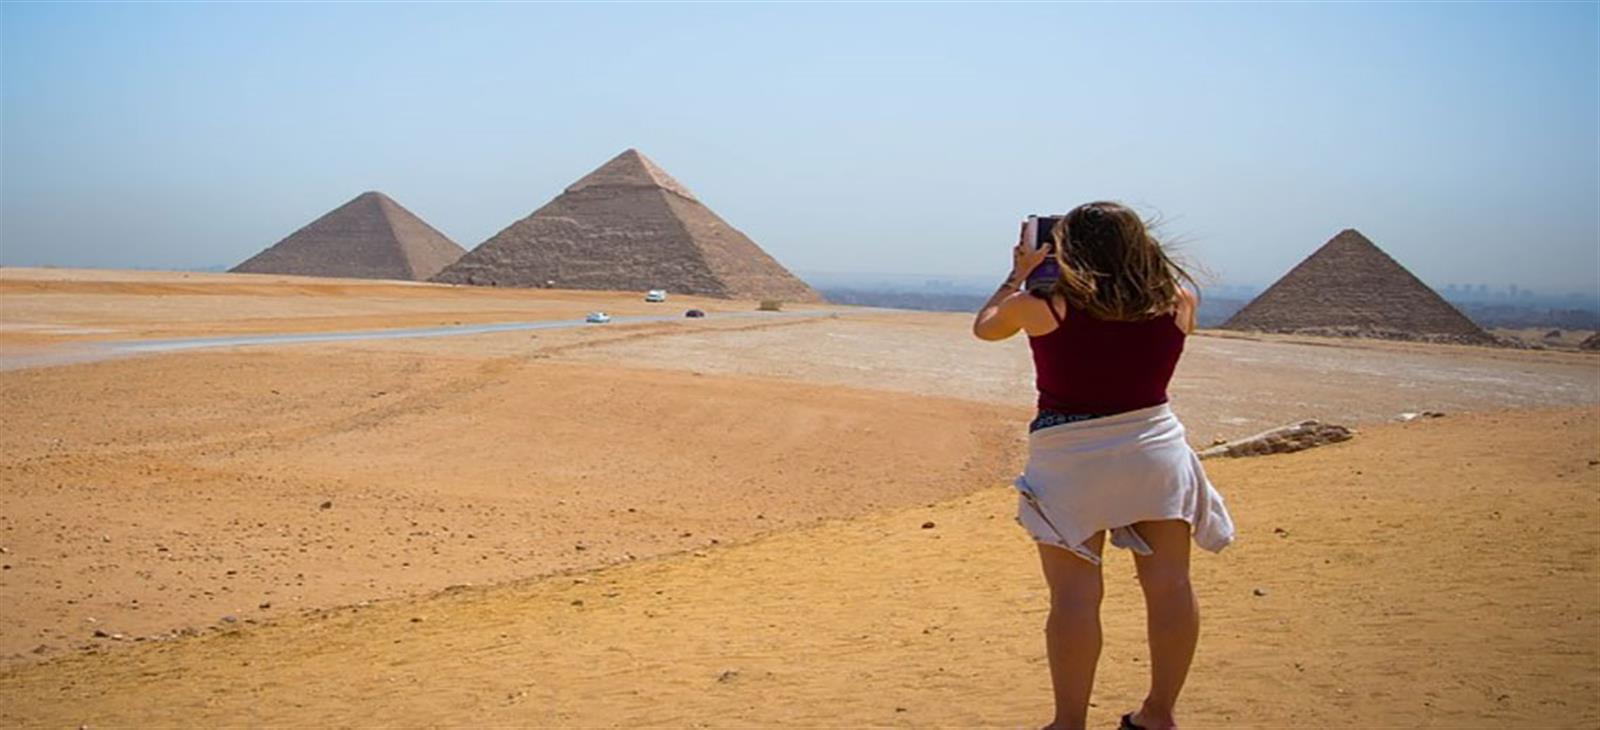 cairo and alexandria travel package